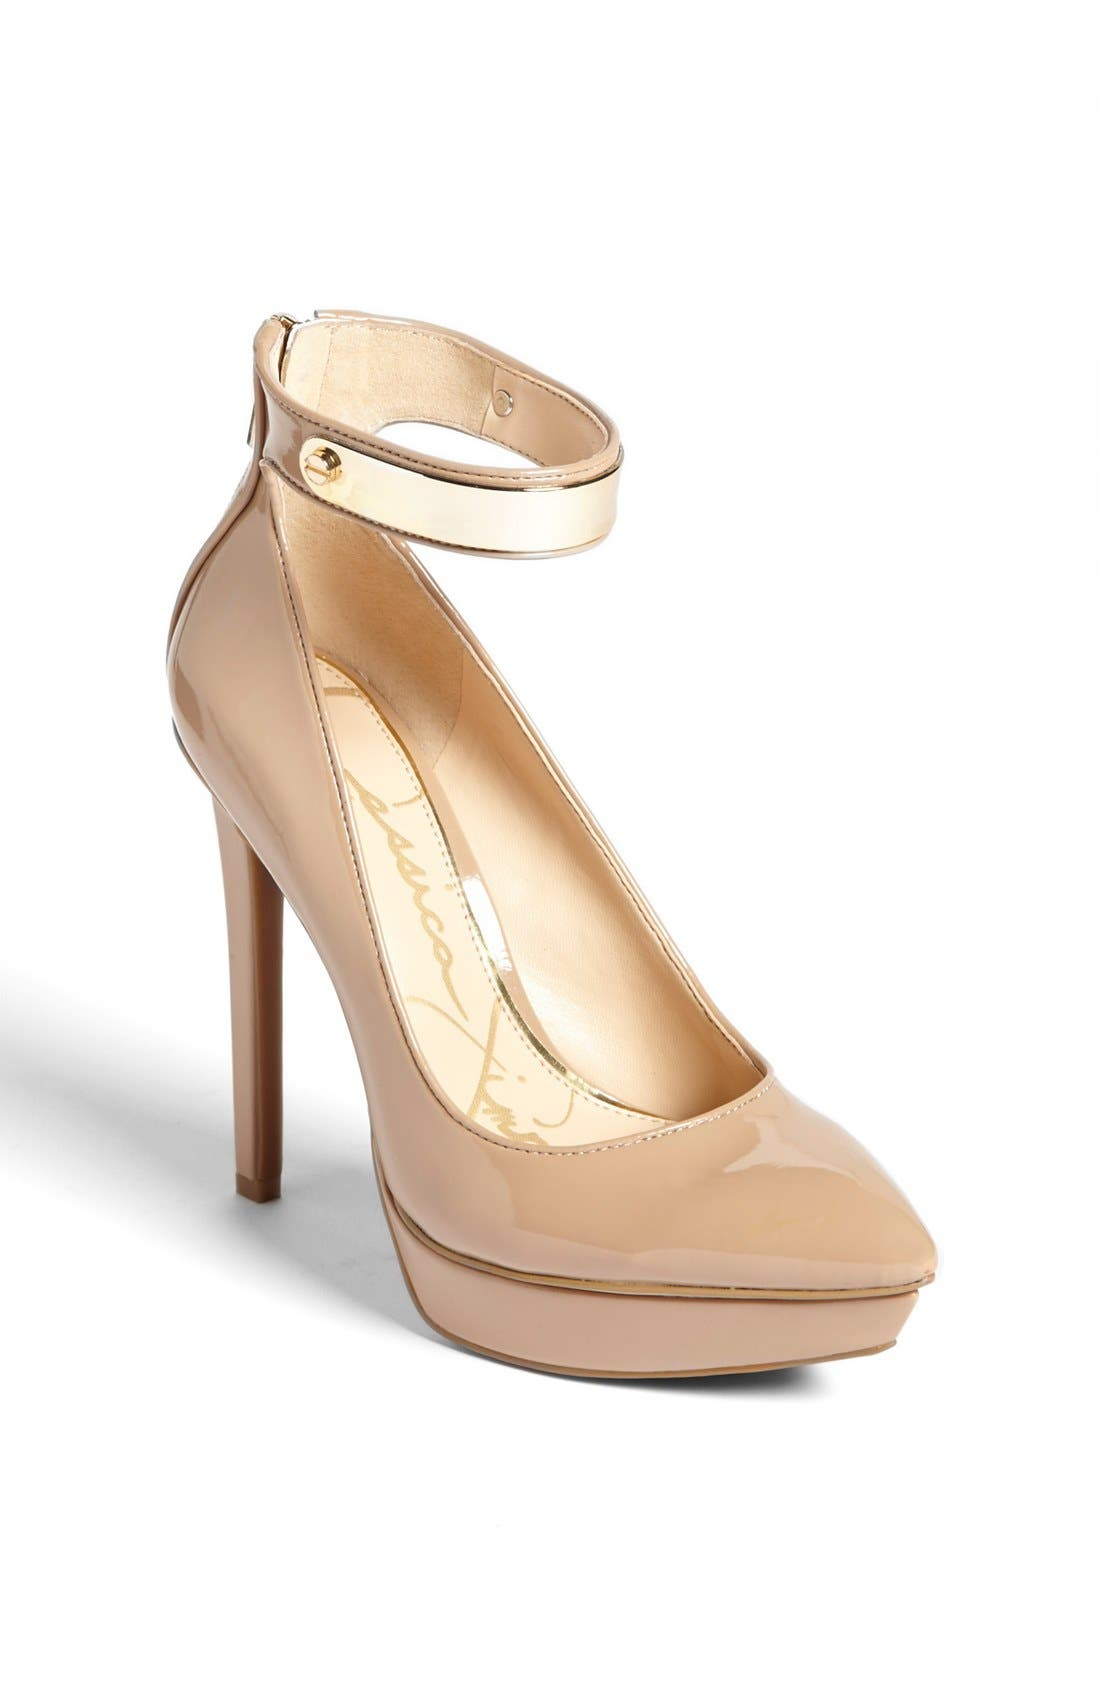 Main Image - Jessica Simpson 'Violla' Ankle Strap Pointy Toe Pump